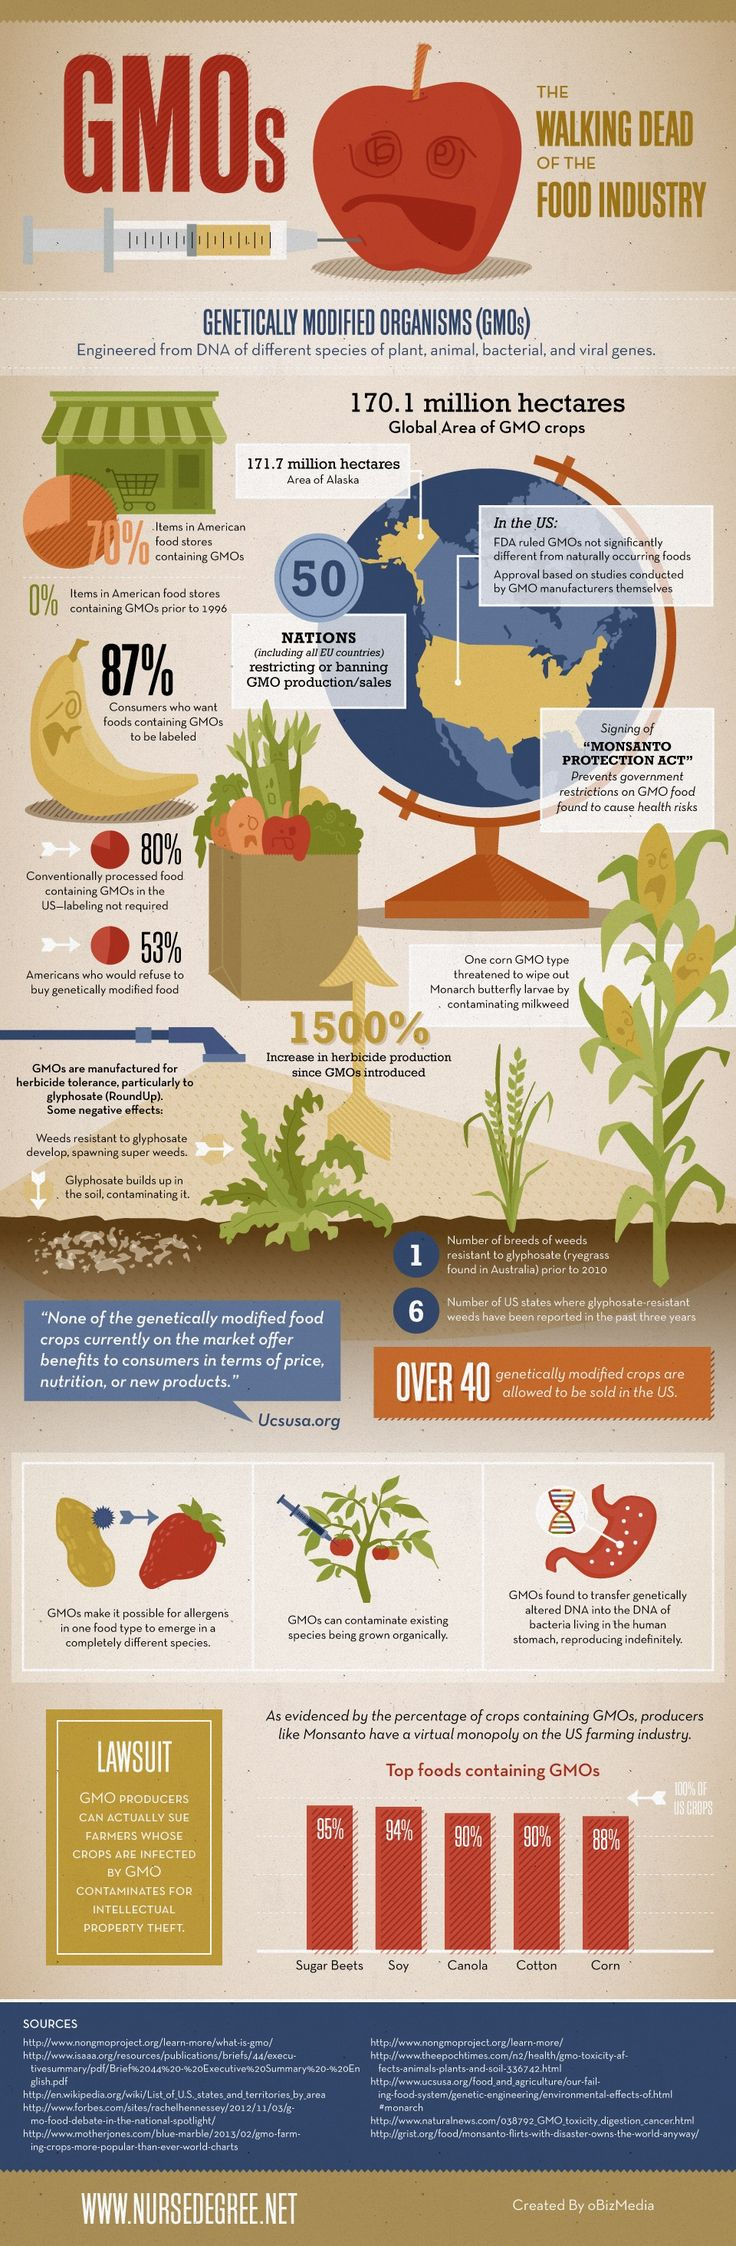 GMOs – The Walking Dead of the Food Industry Found this on Barbara H. Peterson's site Farm Wars. Please share with your network of friends. Source: GMOs: The Walking Dead of the Food Industry